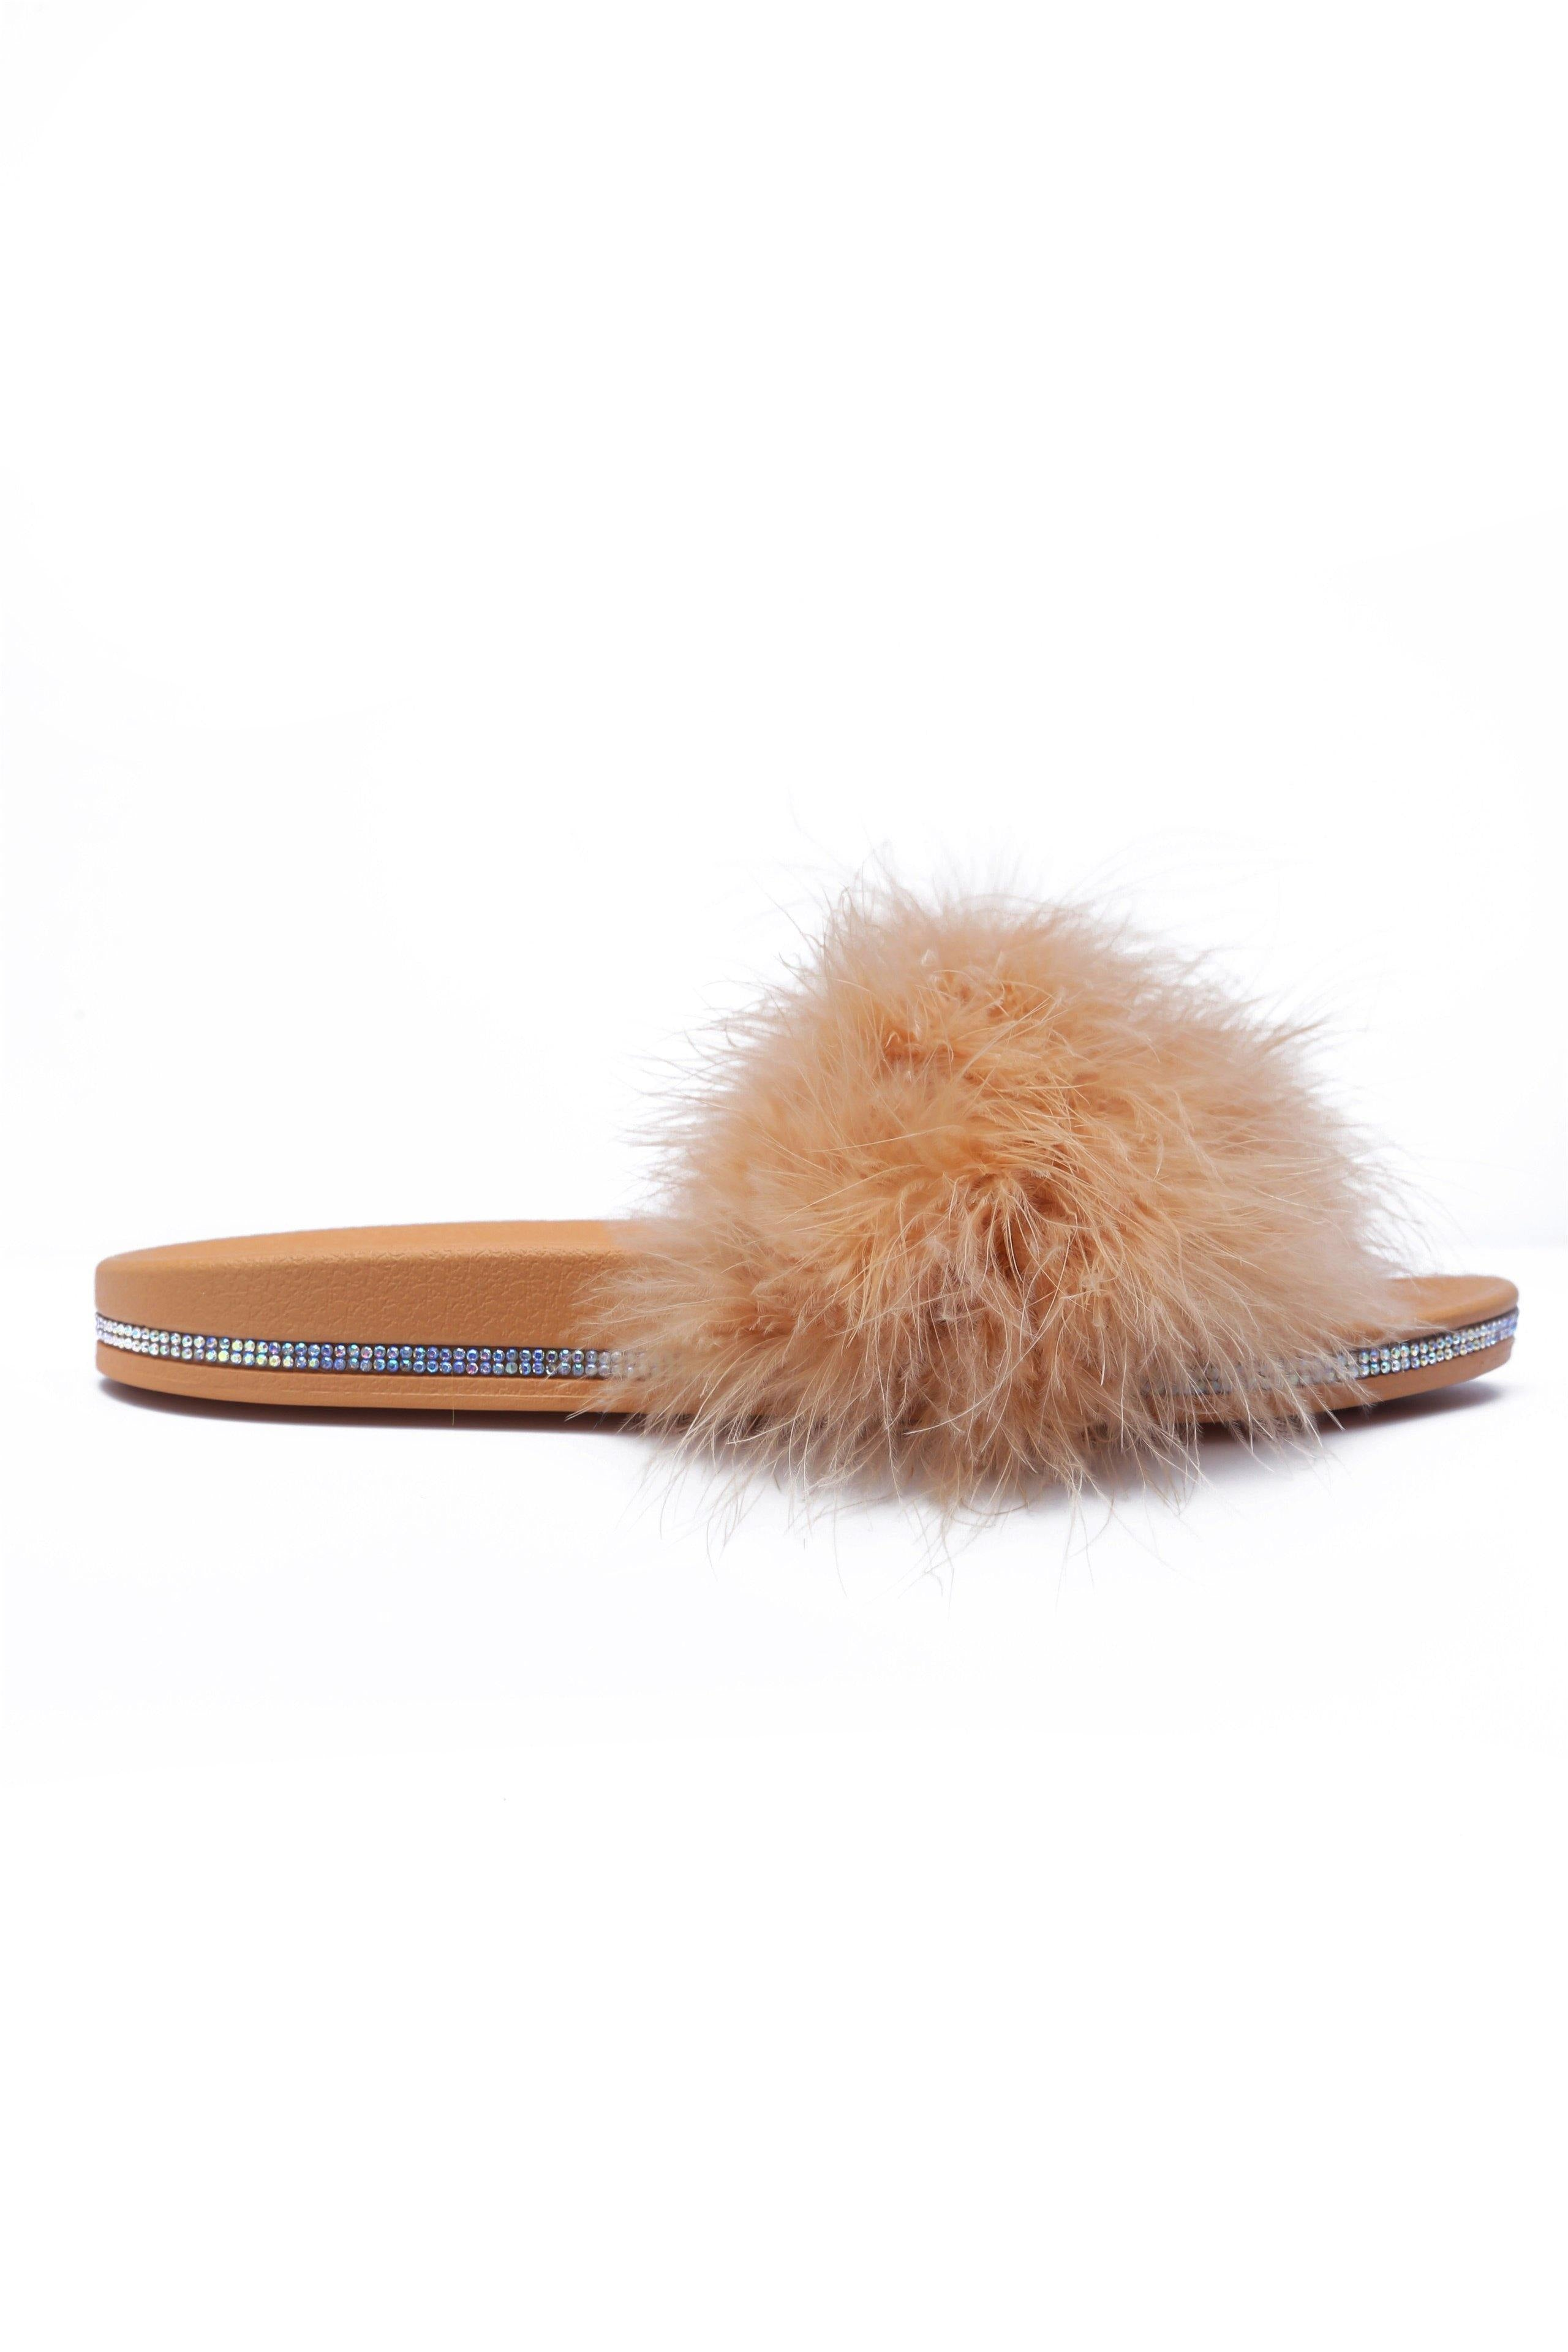 AVILA READY TO LOUNGE FEATHER SLIDES-NUDE